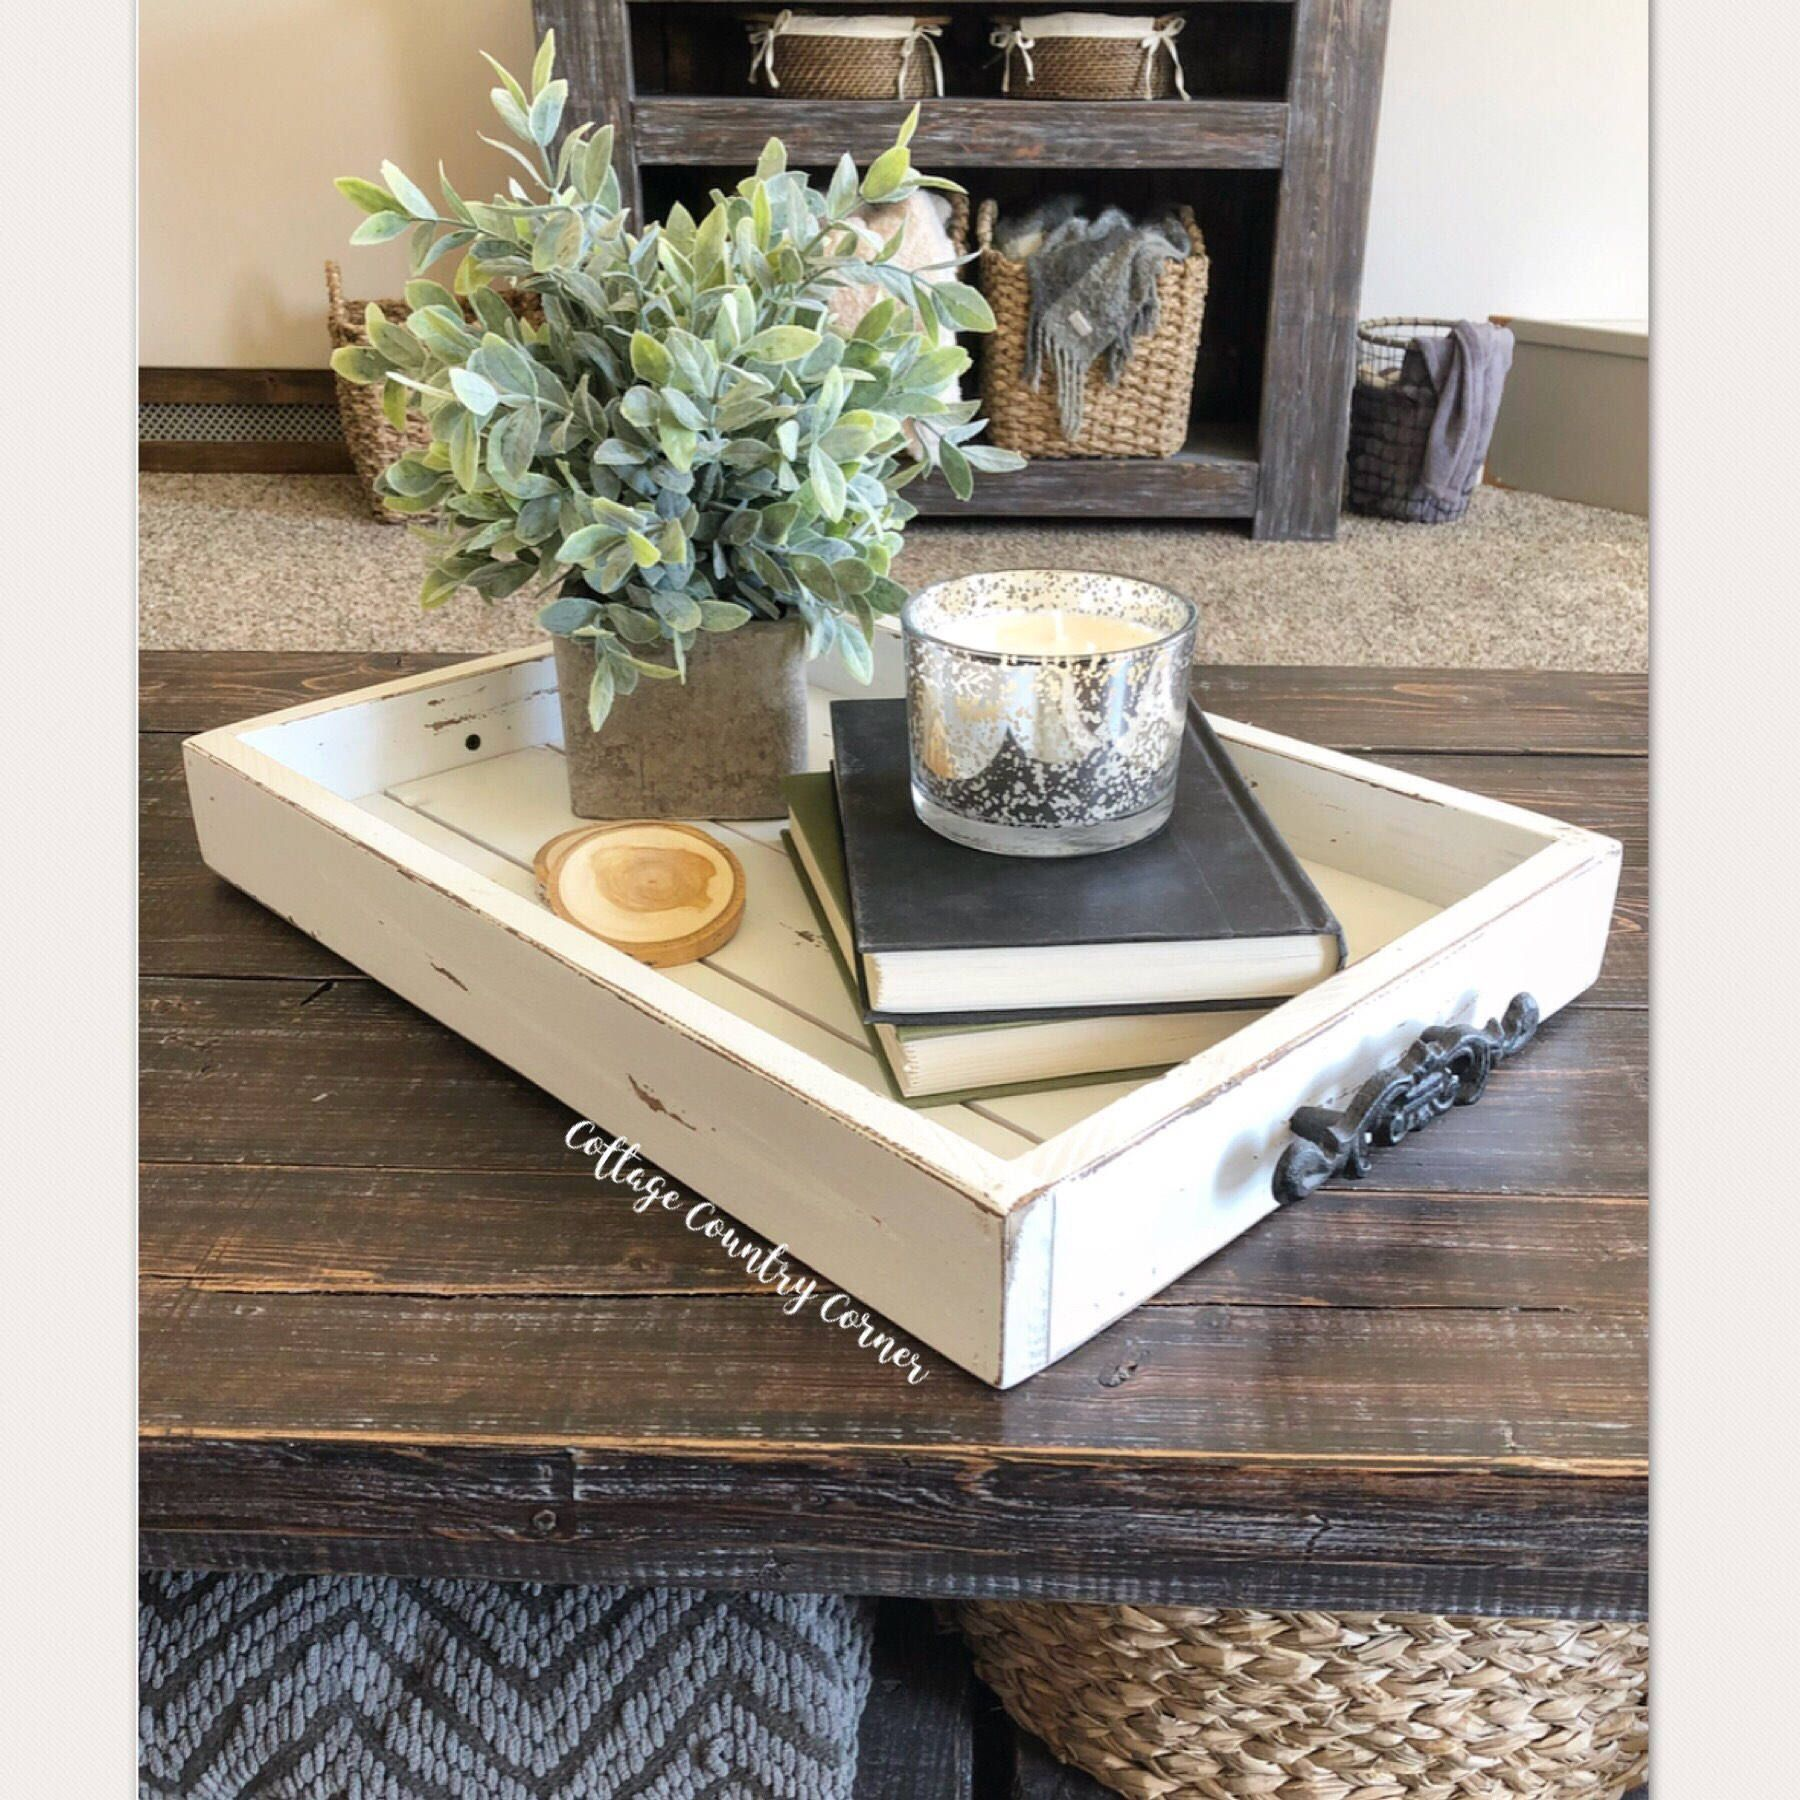 35 Best Coffee Table Ideas Modern Unique And Simple Design Coffee Table Decor Living Room Coffe Table Decor Farmhouse Coffee Table Decor